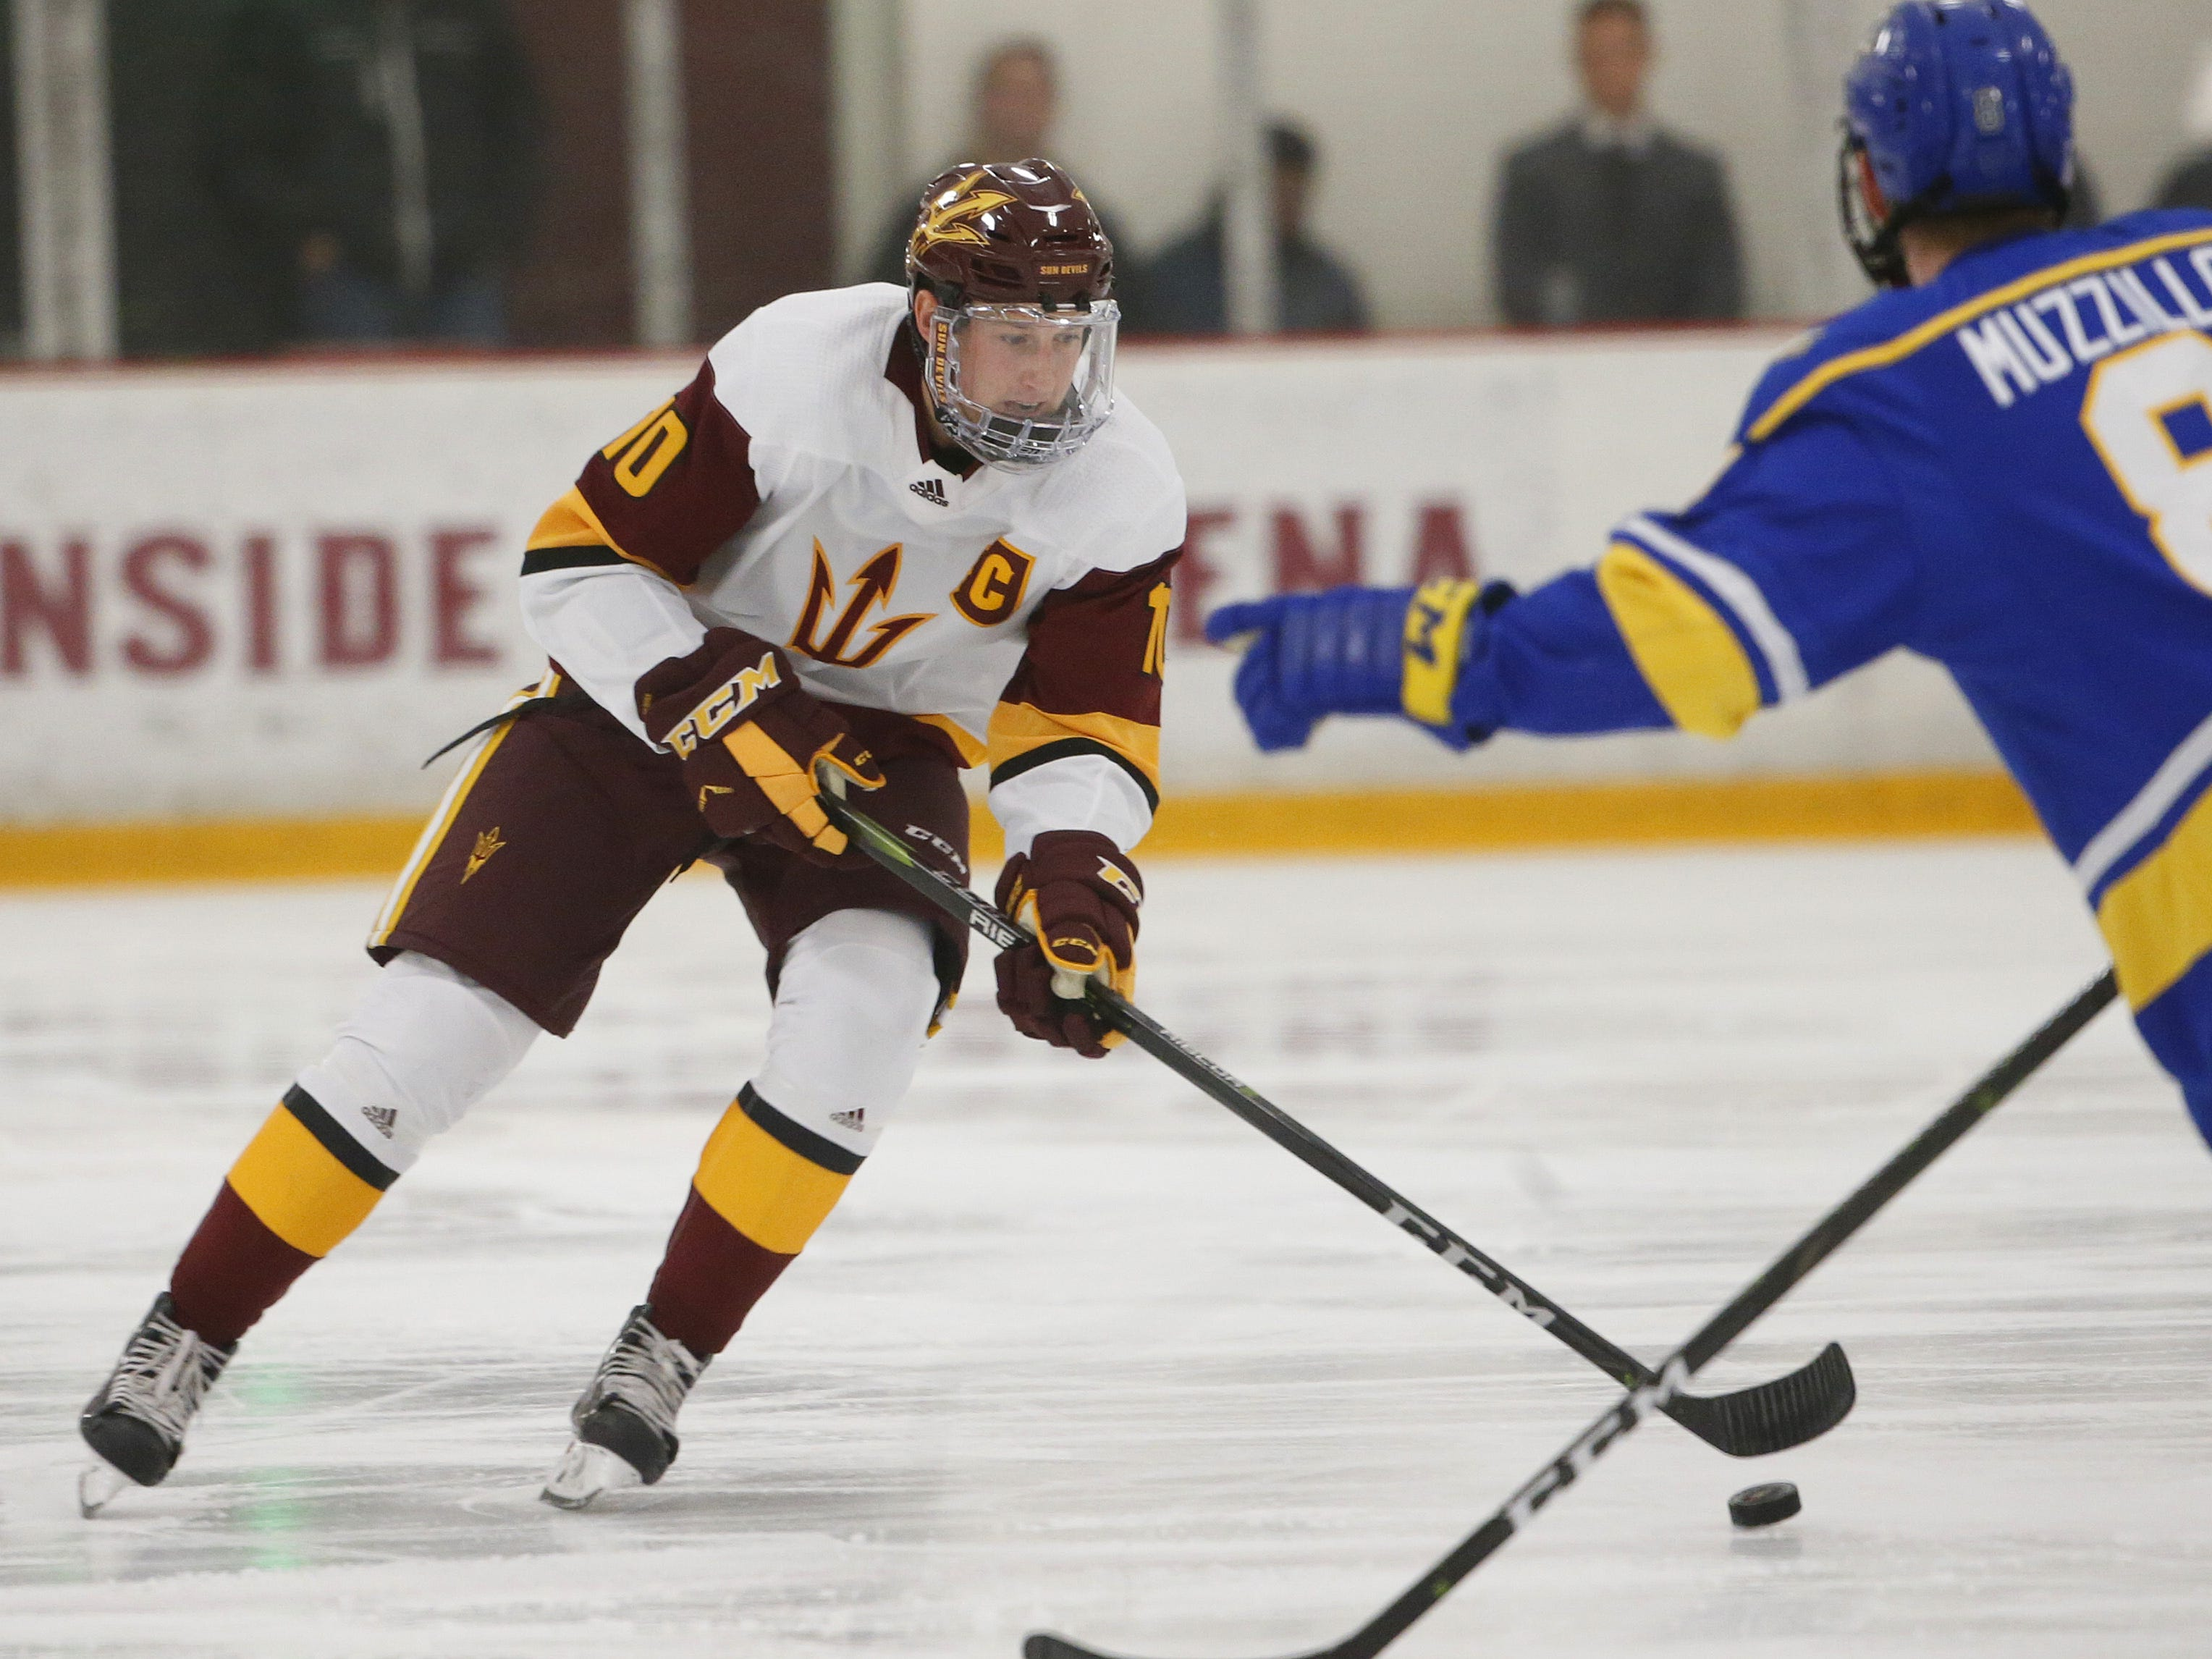 ASU's Tyler Busch (10) skates up the ice against Alaska's Jordan Muzzillo (8) at Oceanside Ice Arena in Tempe, Ariz. on October 7, 2018.